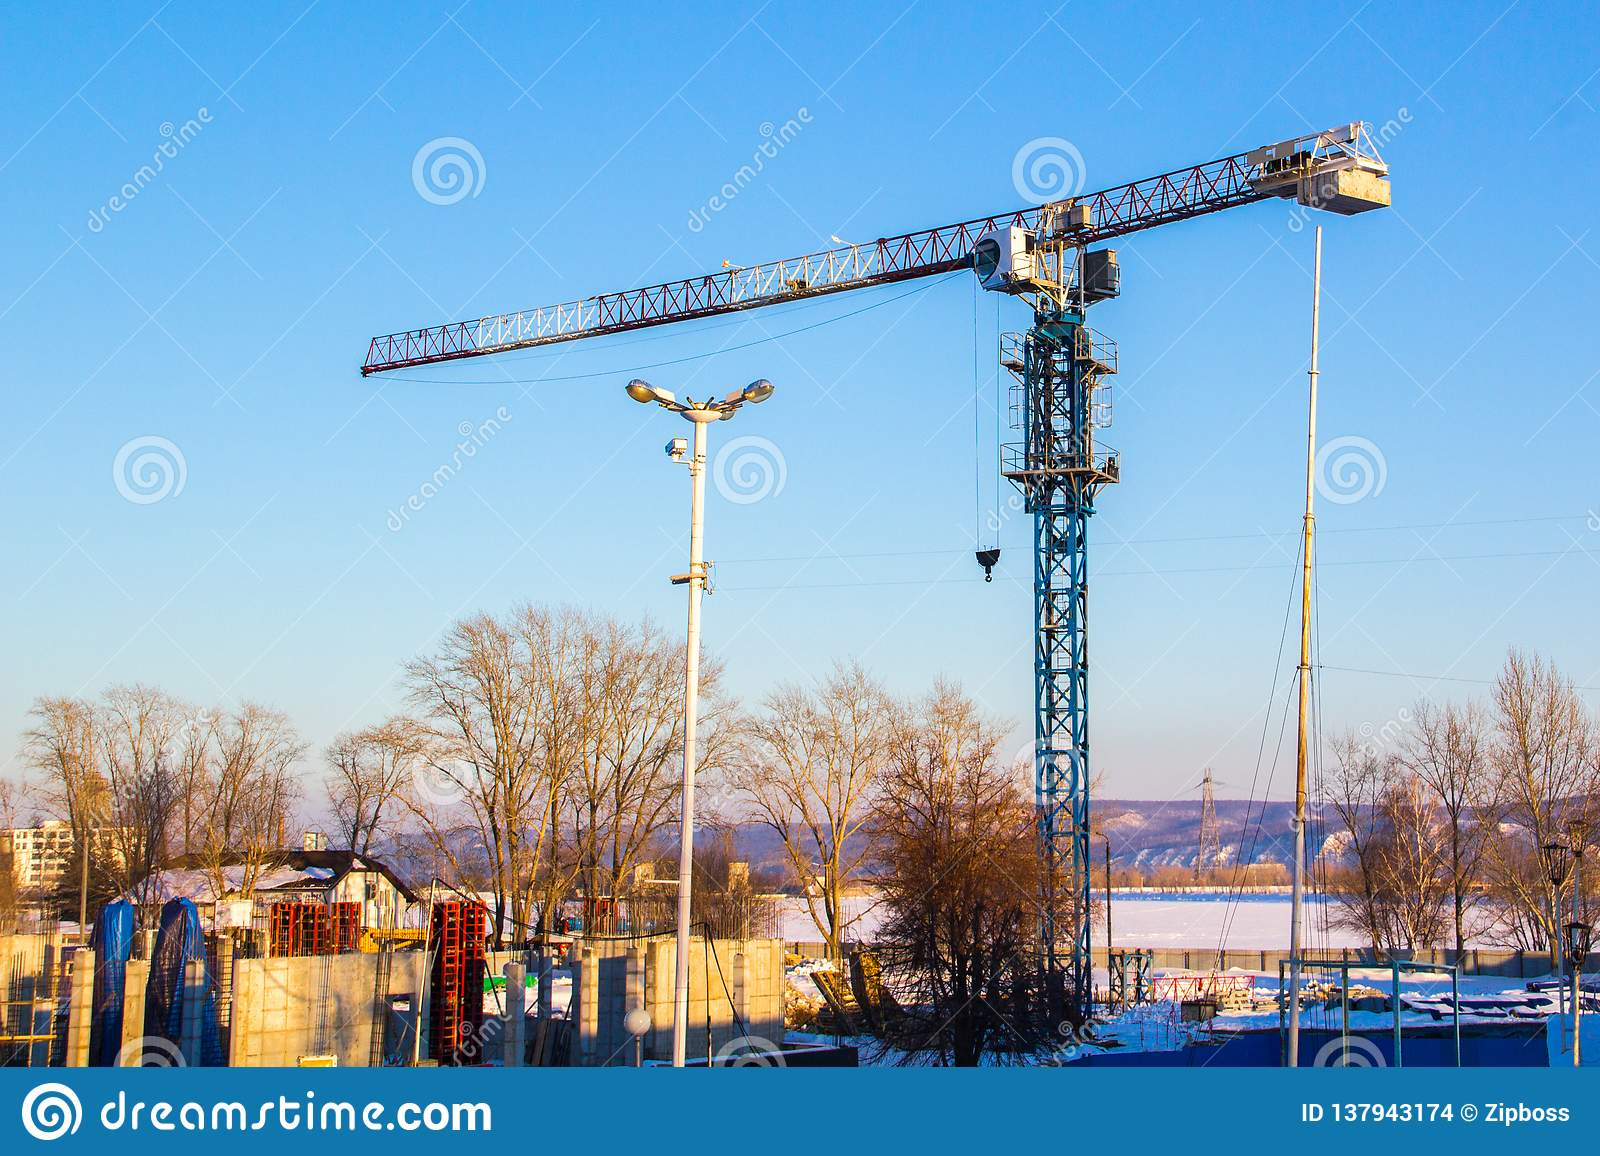 High lift construction crane with white, red and blue colors against a blue sky